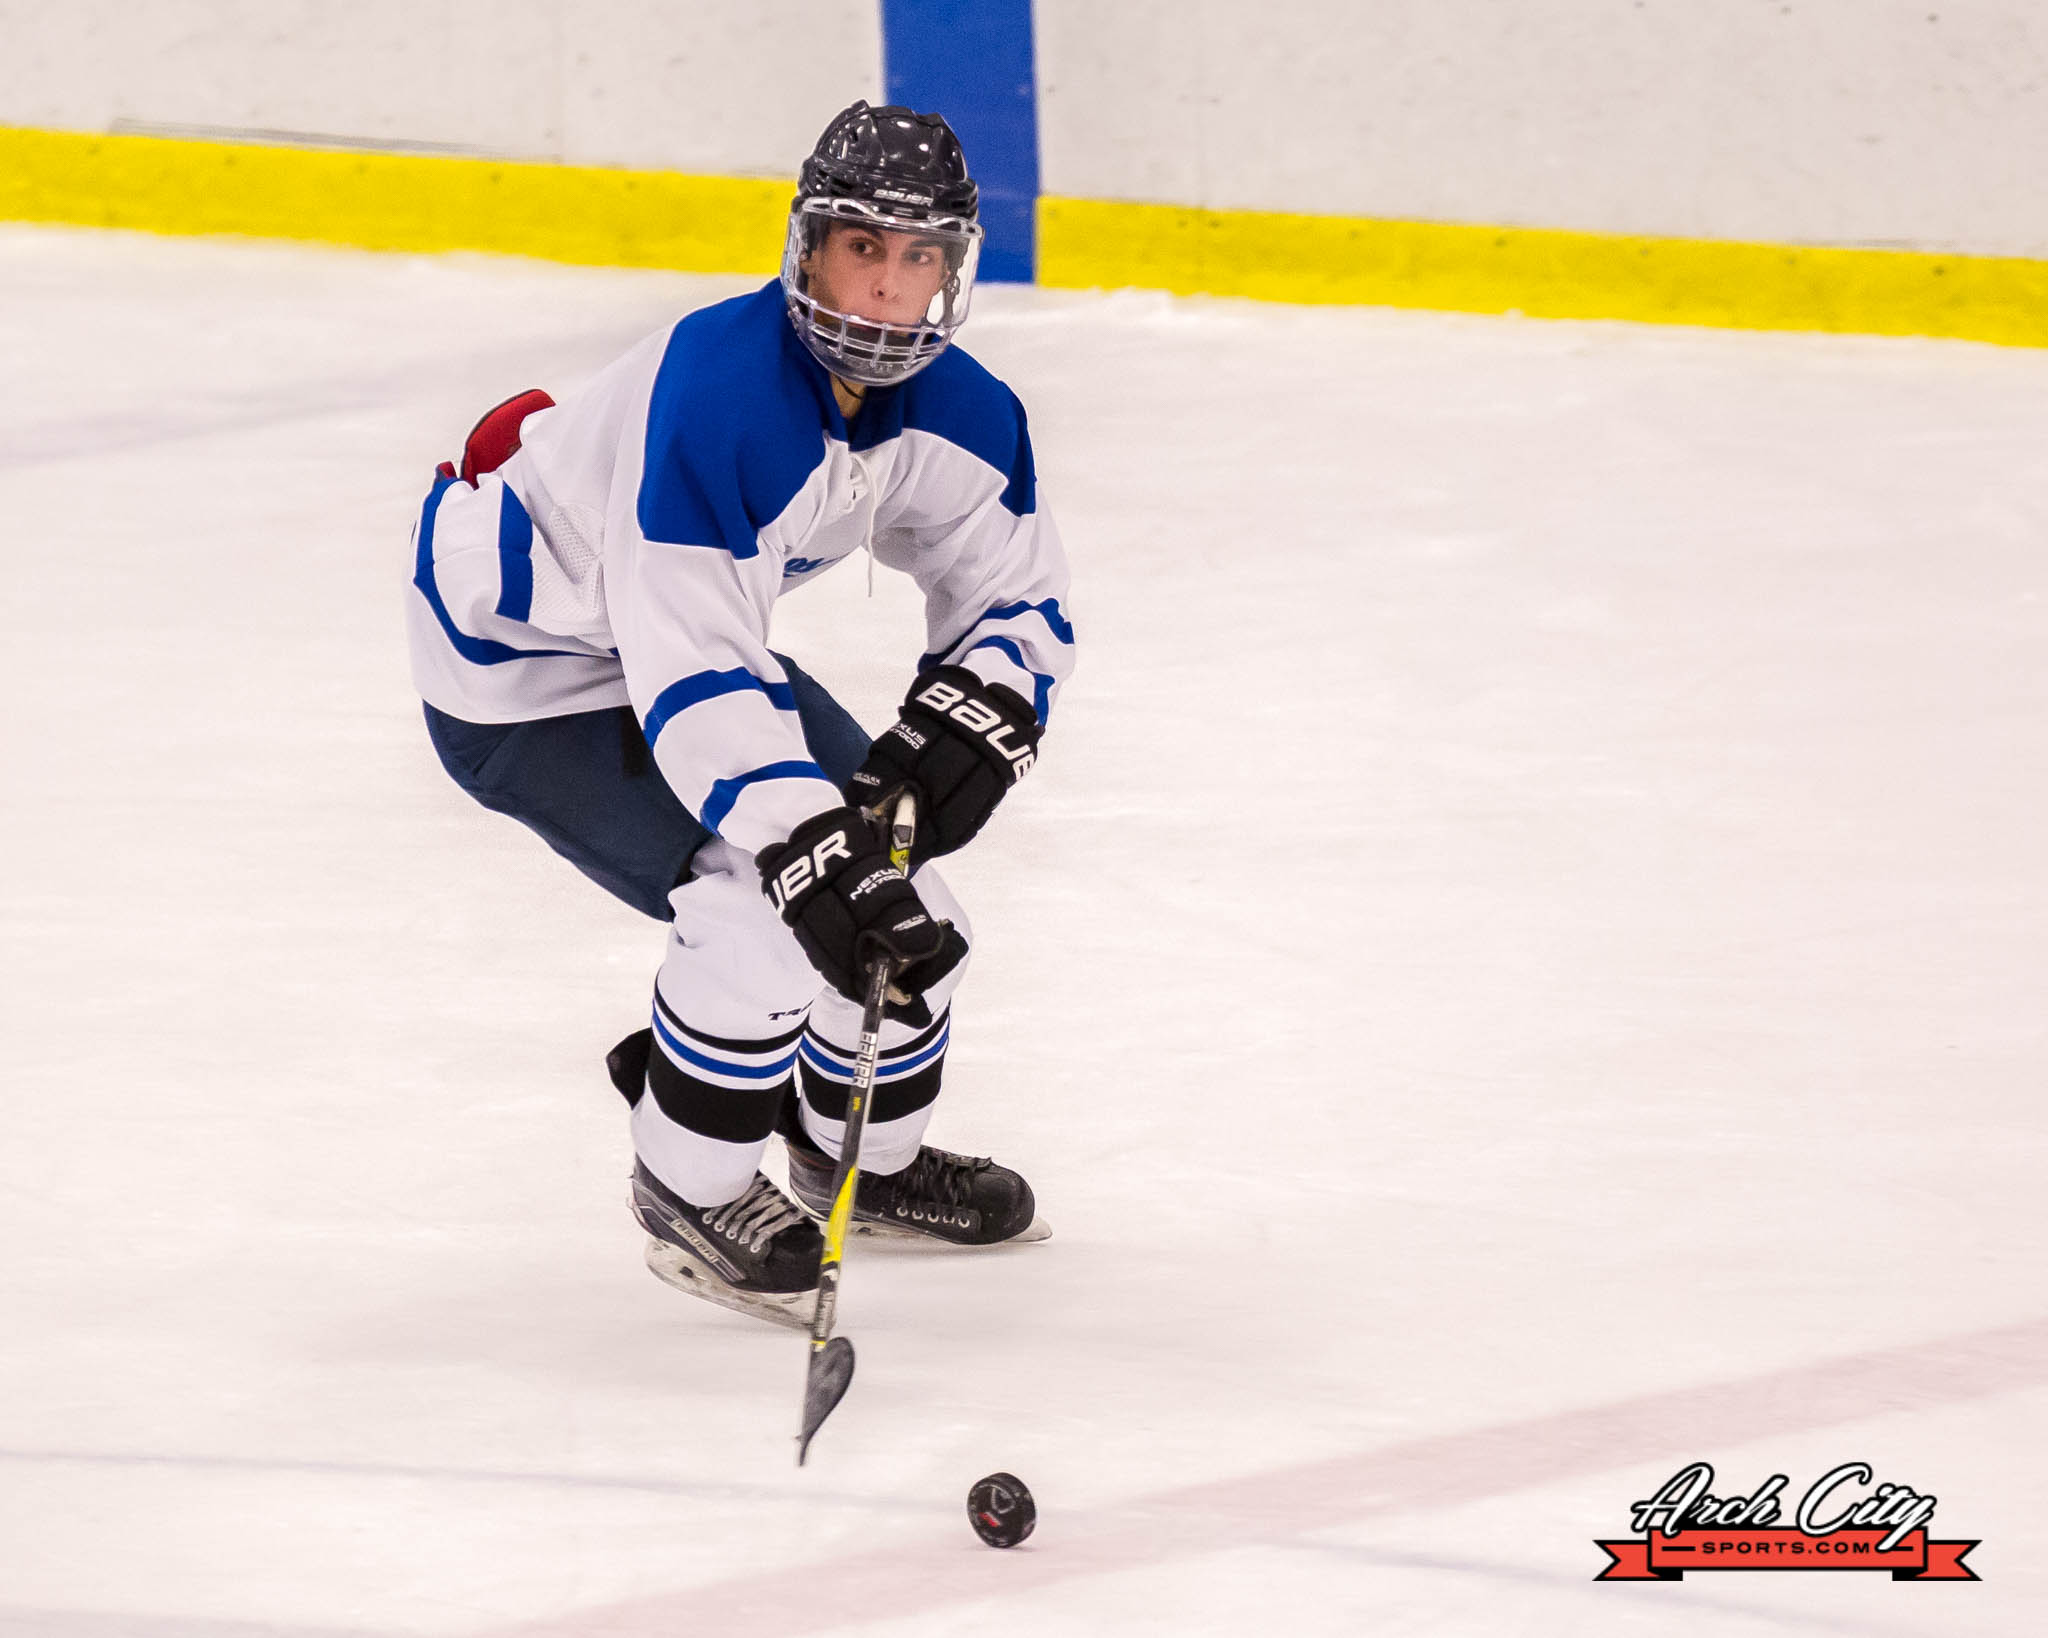 Duchesne High School Ice Hockey Gallery Fhc Vs Duchesne Hockey 11 20 17 Archcity Media